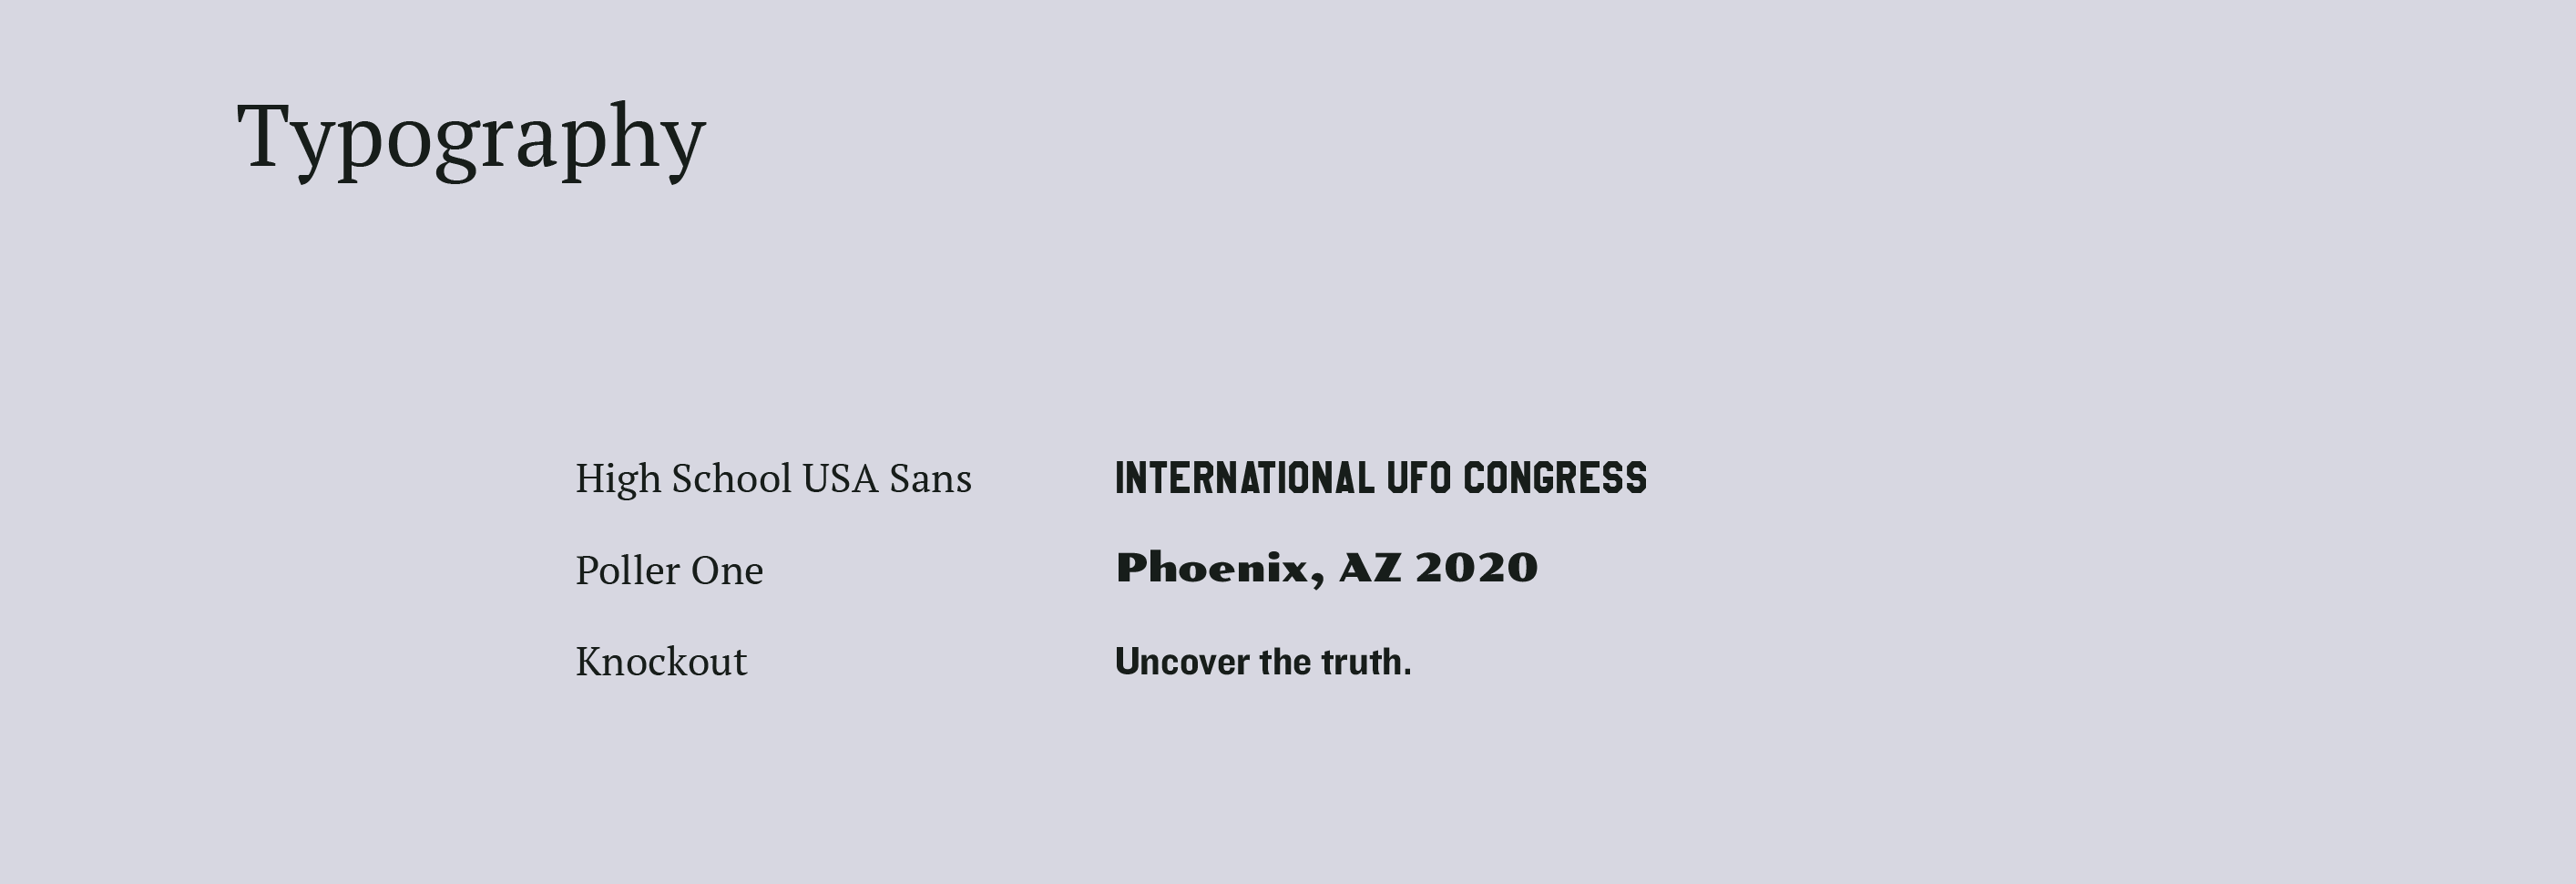 UFO typography. high school USA sans, poller one, and knockout